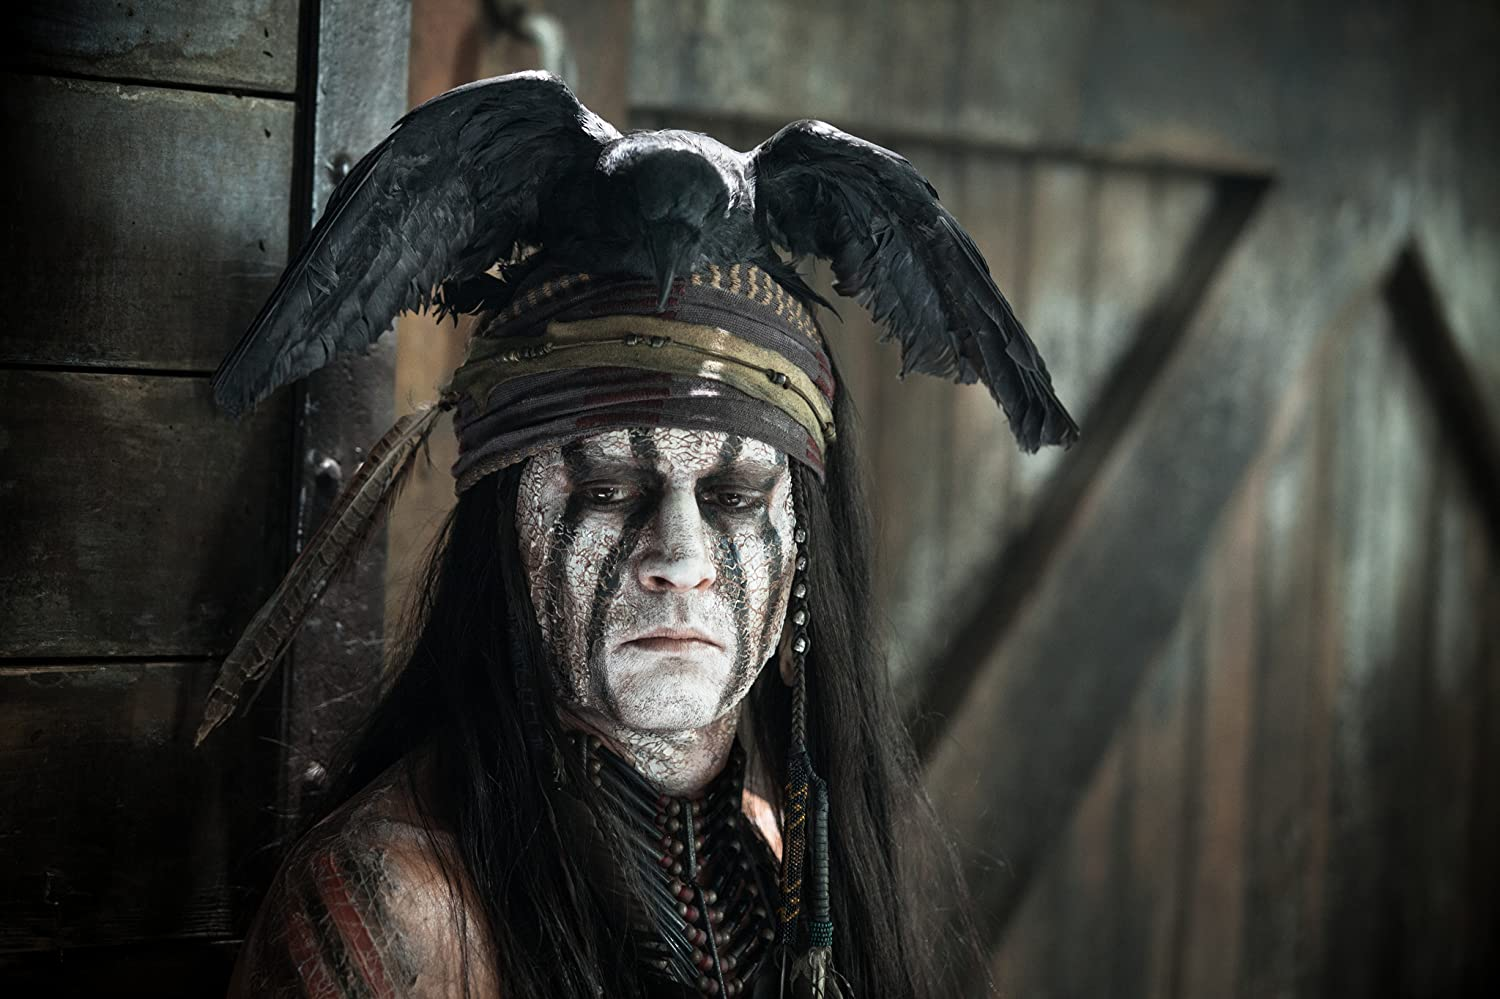 Johnny Depp in The Lone Ranger 2013